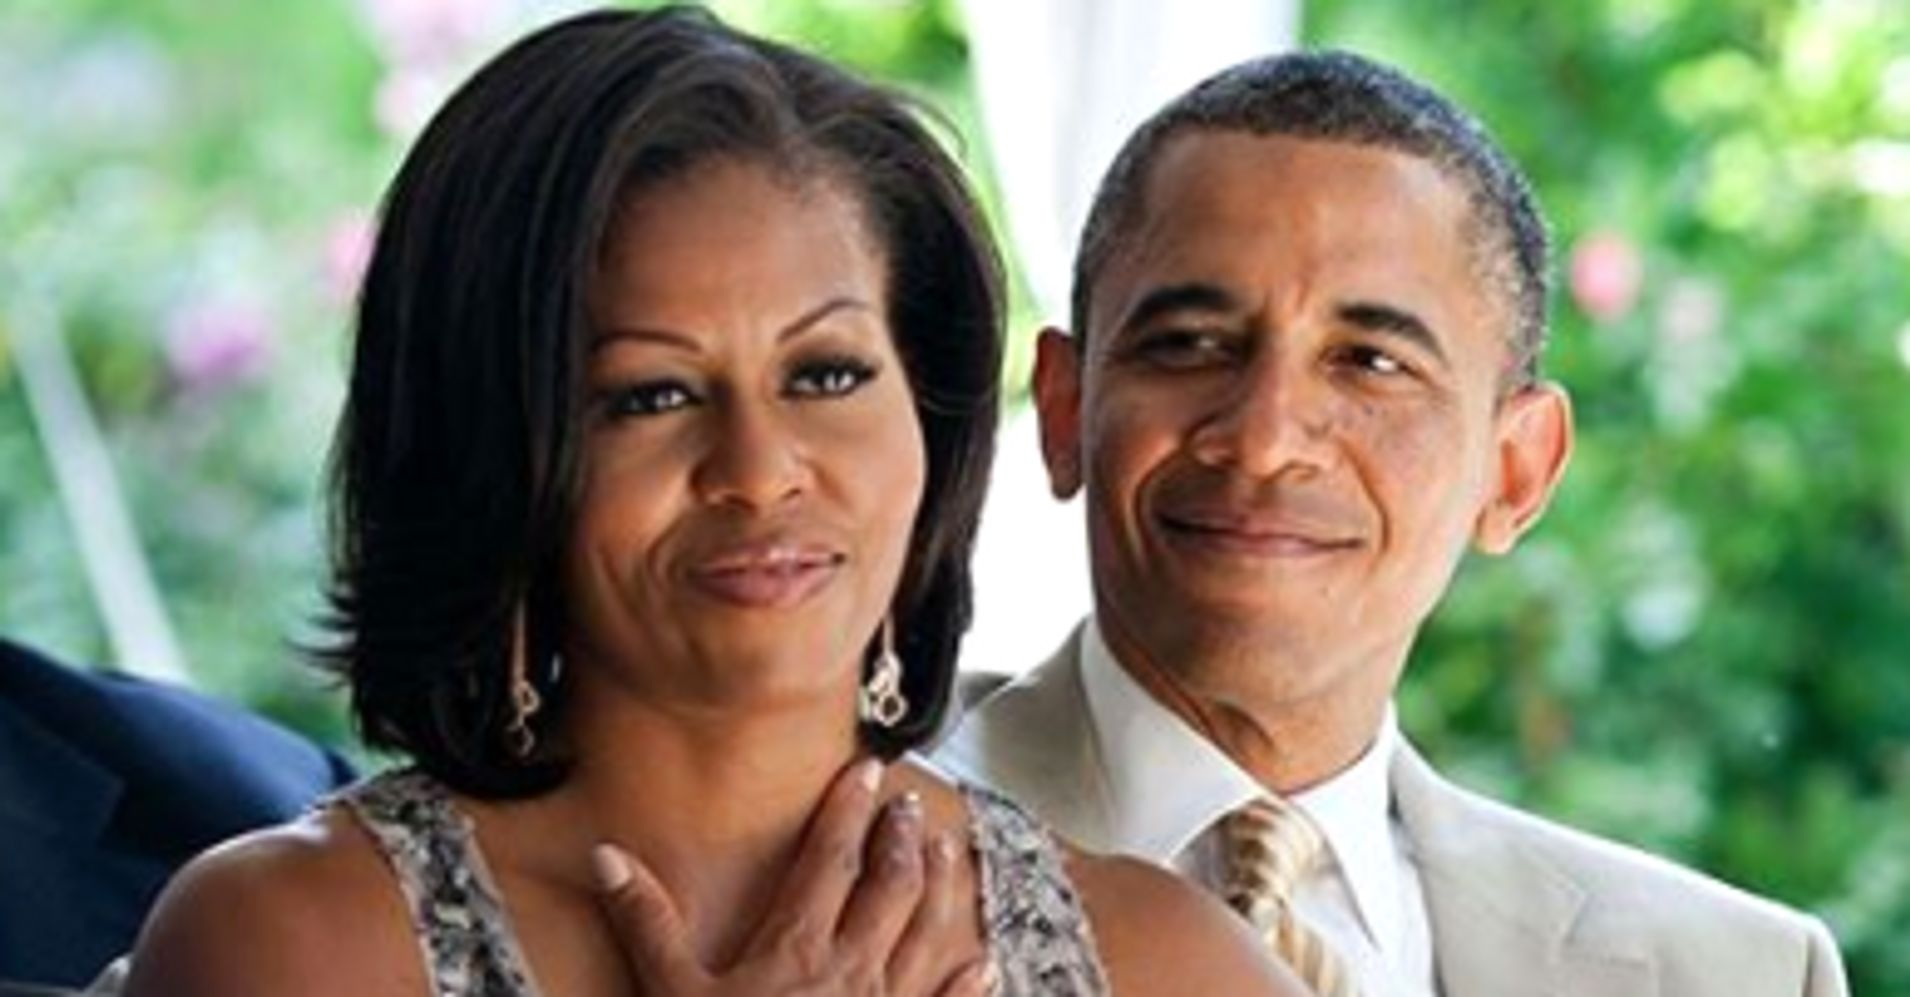 Obama's Birthday Message To Michelle Will Make You Feel All Warm And Fuzzy